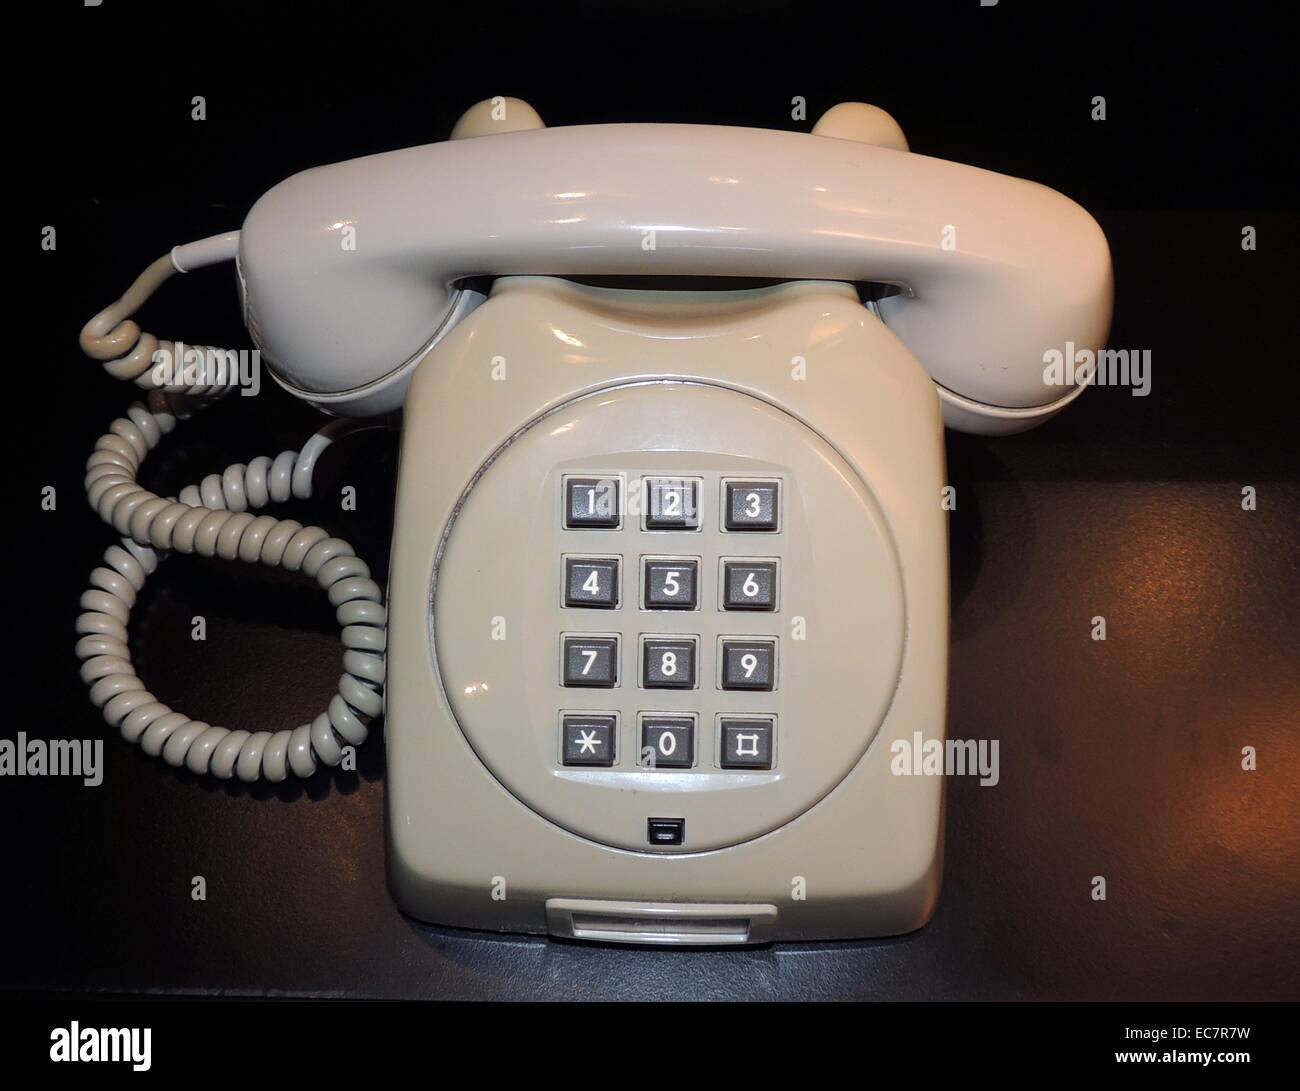 Telephone model from the 1970s - Stock Image